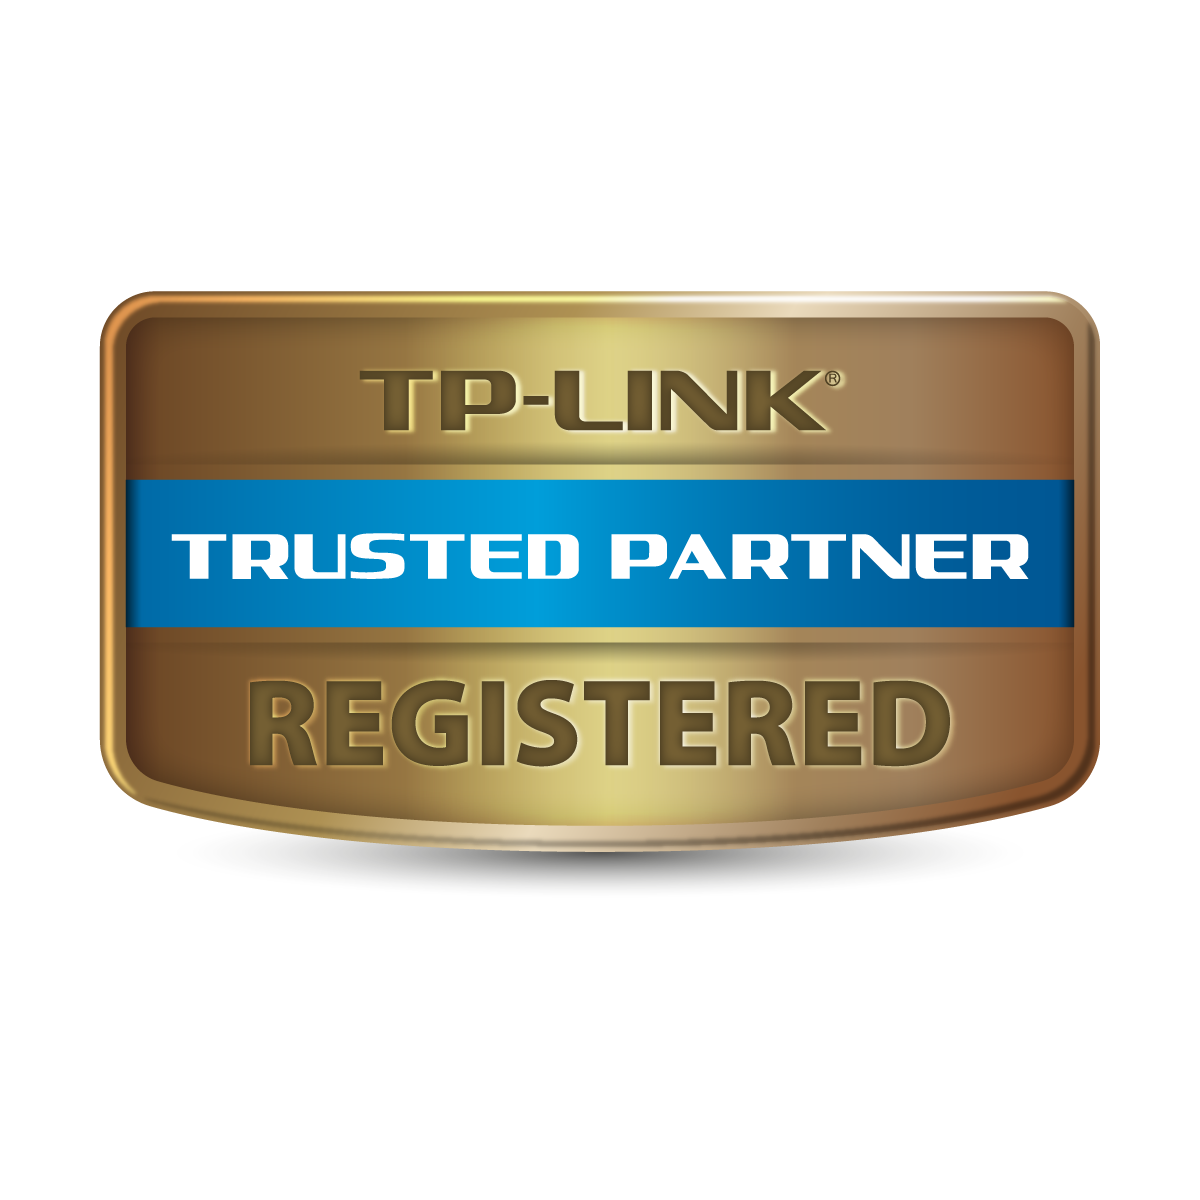 TP-Link Trusted Partner registered